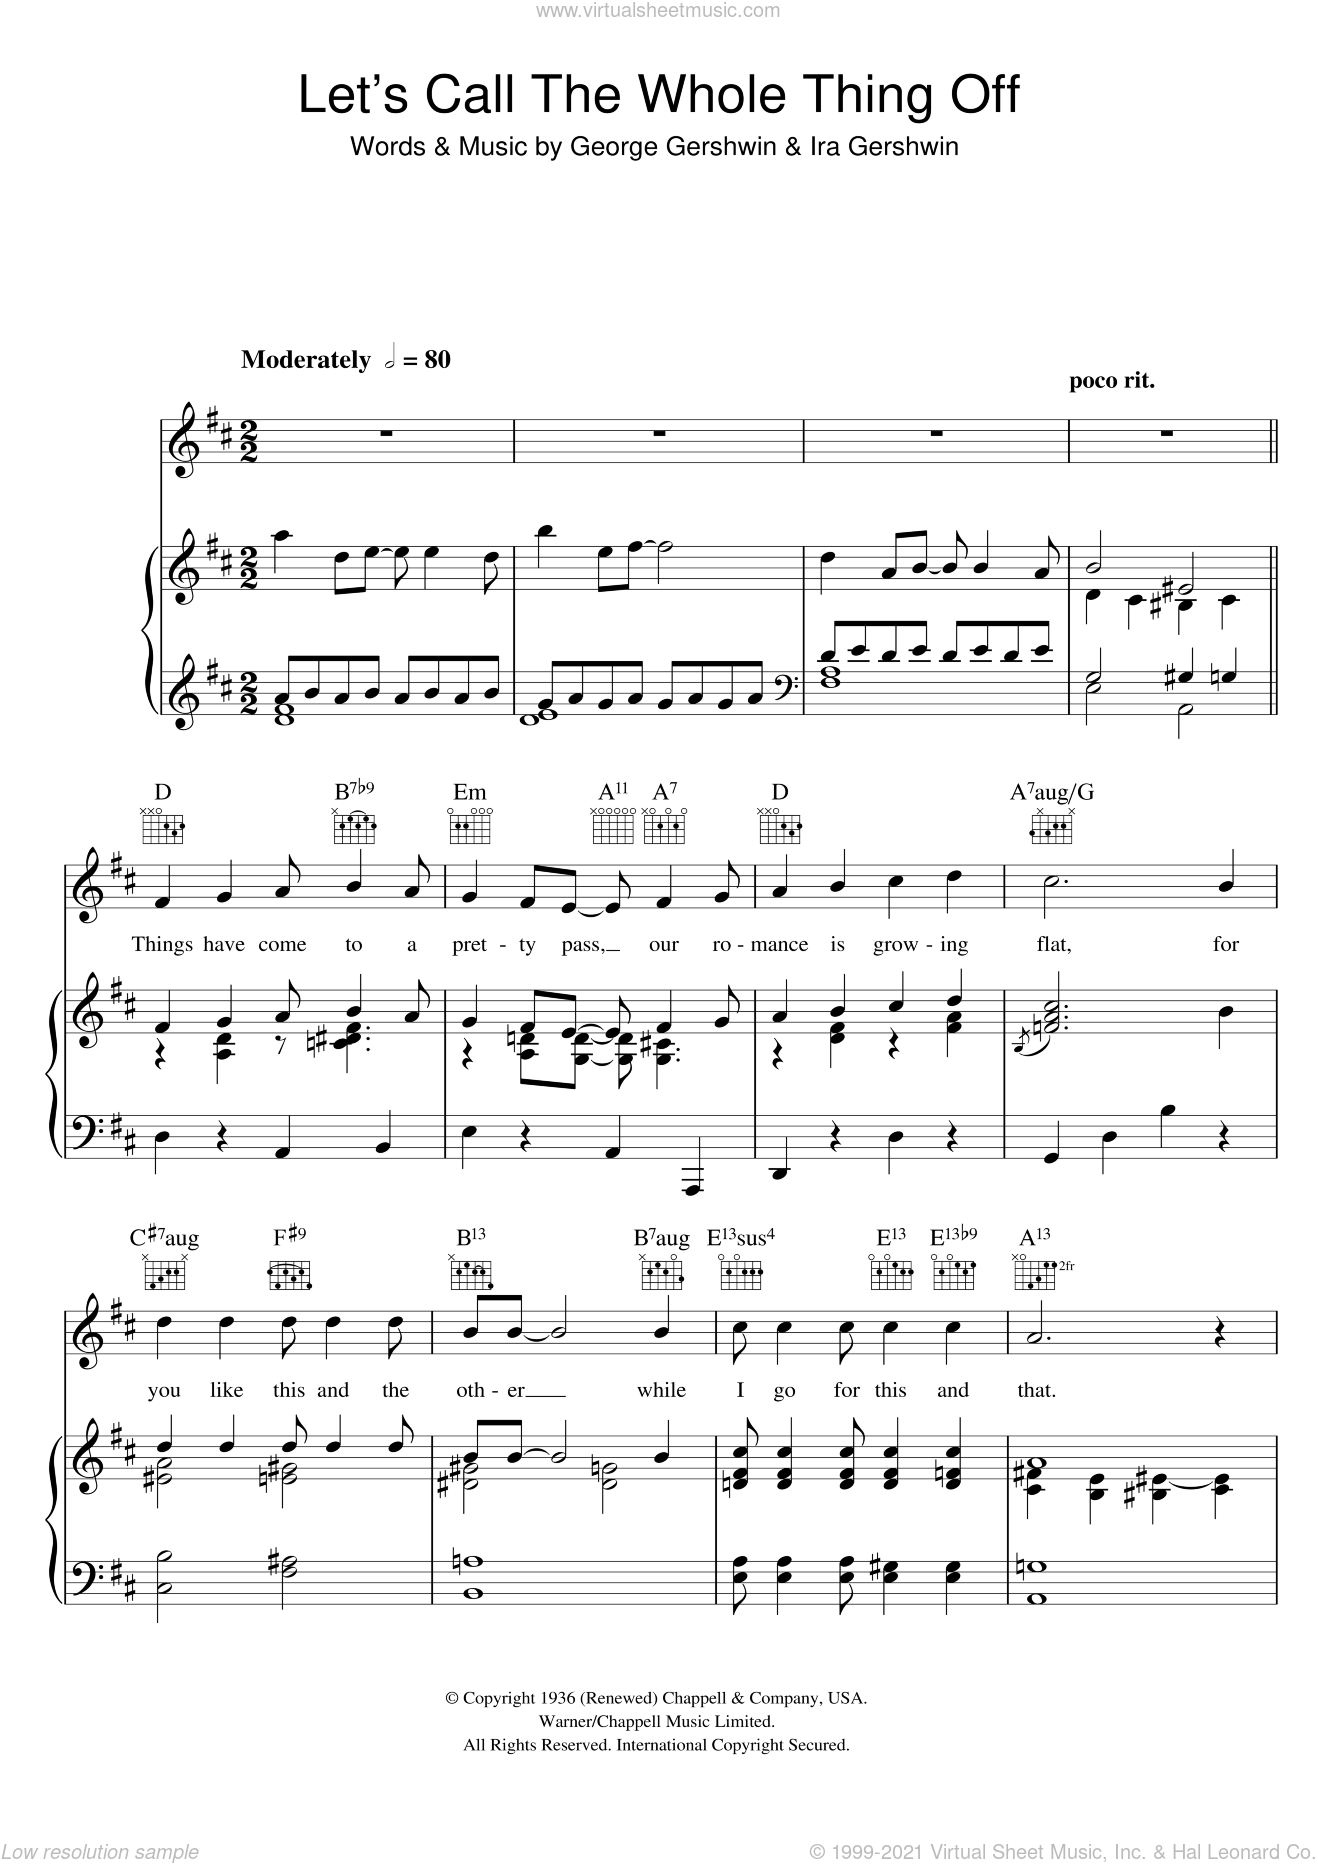 Let's Call The Whole Thing Off sheet music for voice, piano or guitar by George Gershwin and Ira Gershwin, intermediate skill level